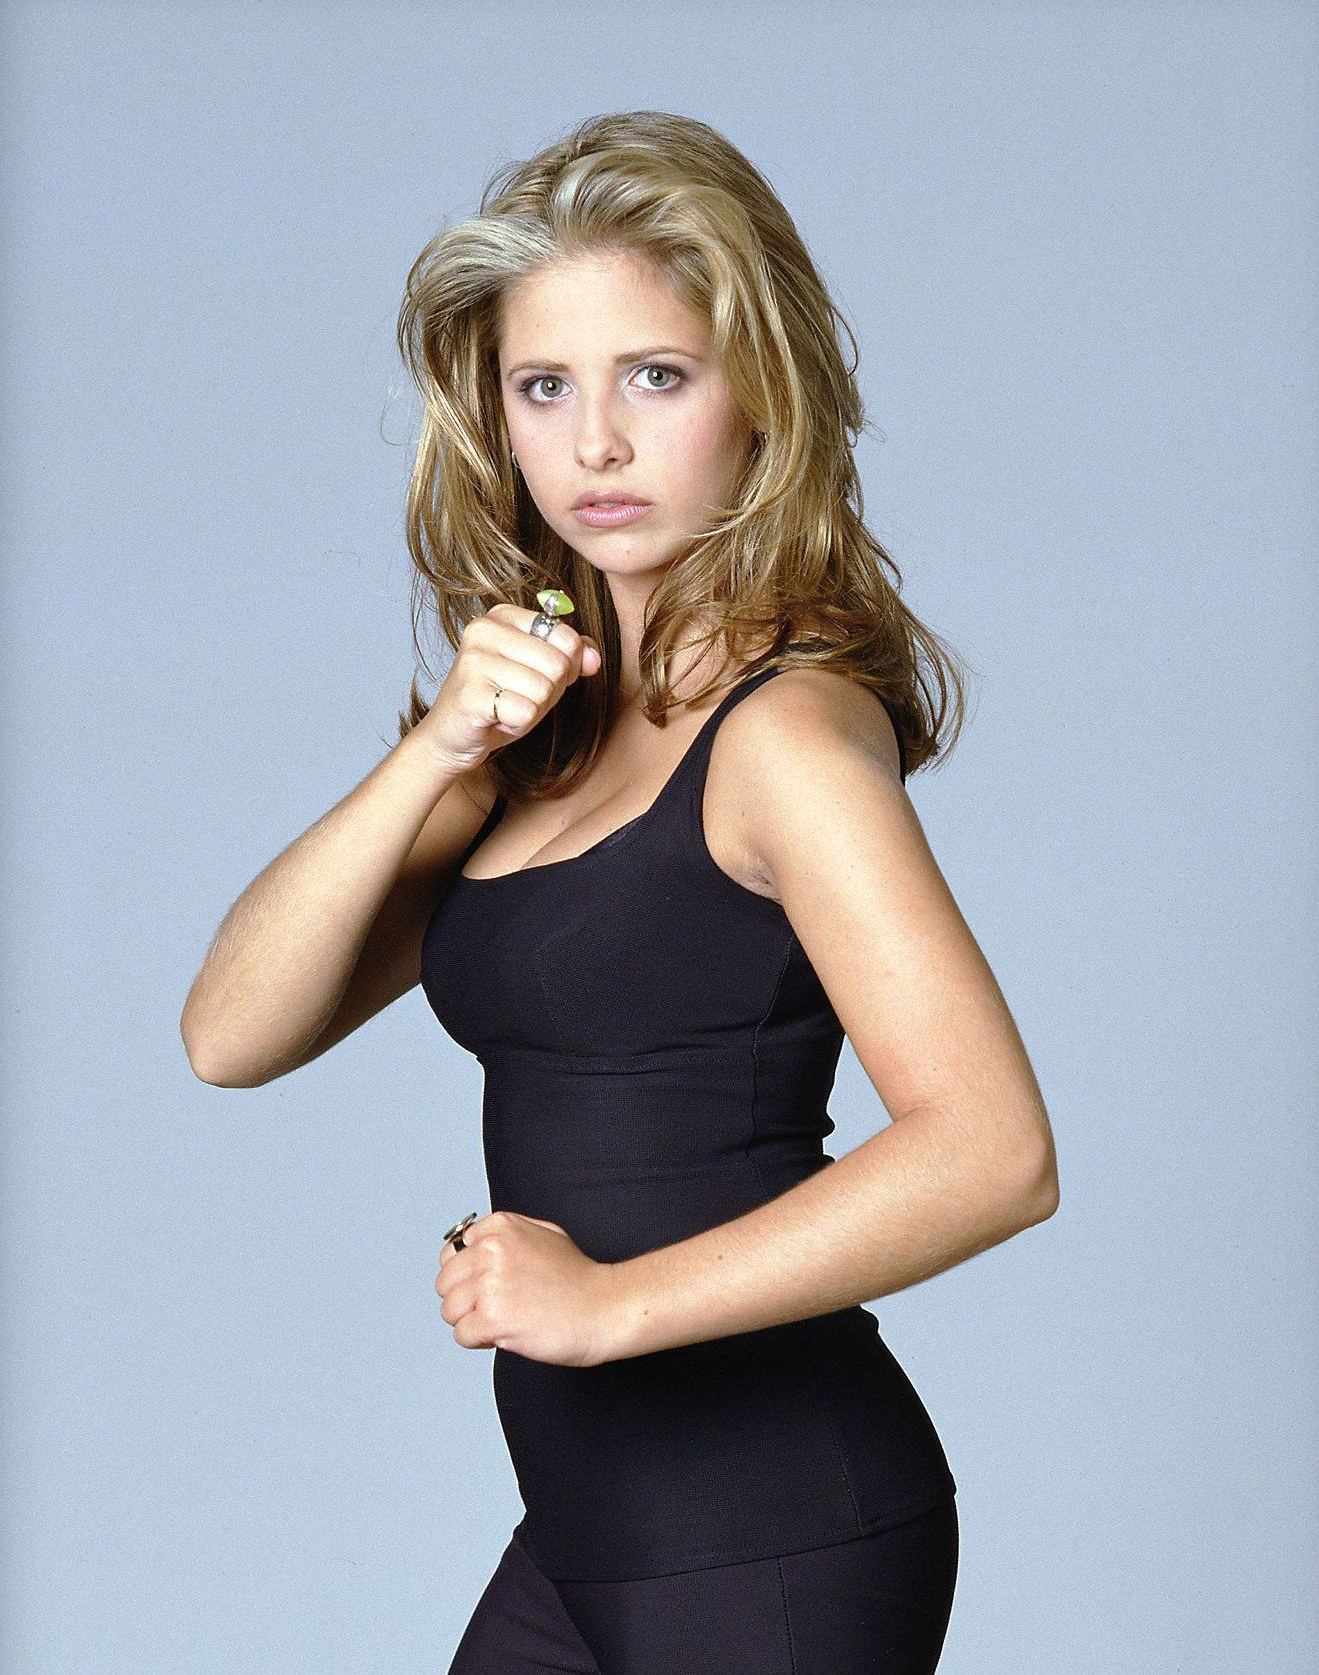 http://dvdbash.files.wordpress.com/2012/02/buffy-sarah-michelle-gellar-s1-51-dvdbash.jpg